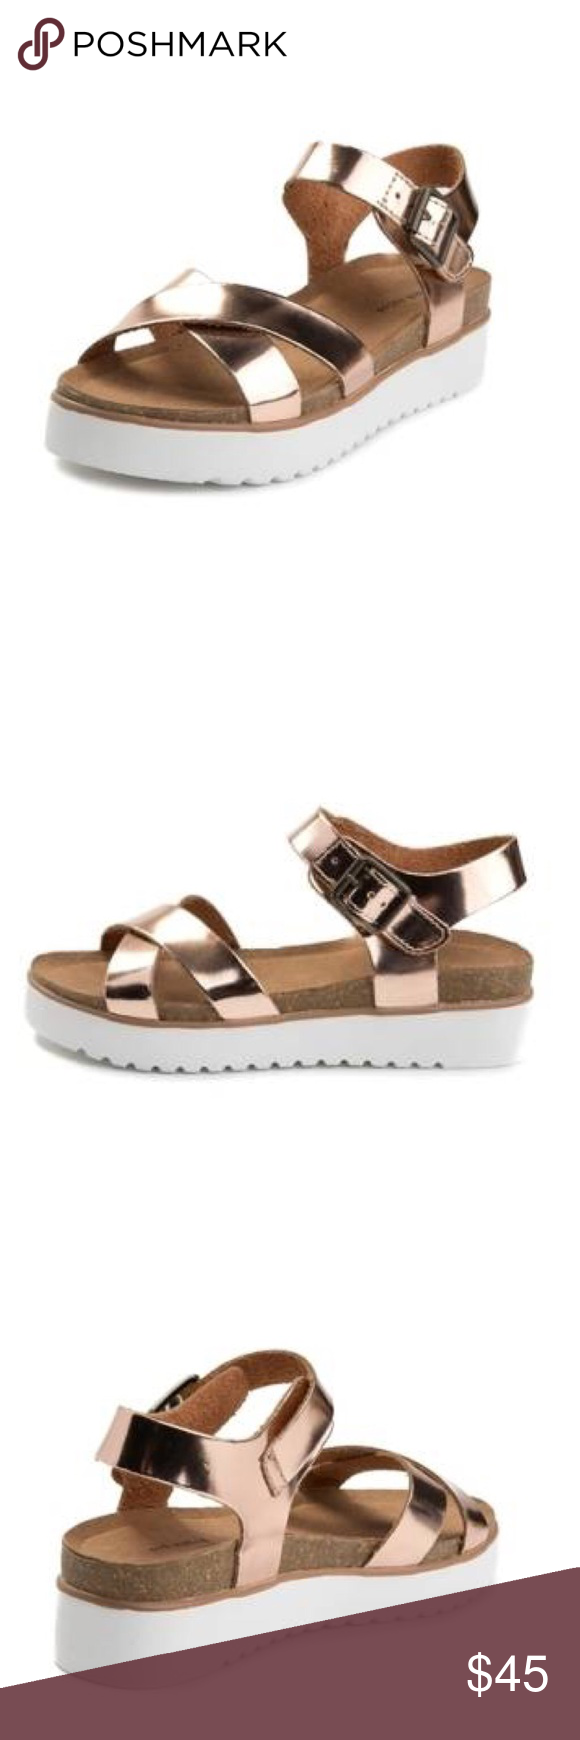 9c7fbefe97a Oetter Rose Gold Sandal Metallic Rose Gold Straps Adjustable Buckles Fits  True to Size Not Rated Shoes Sandals